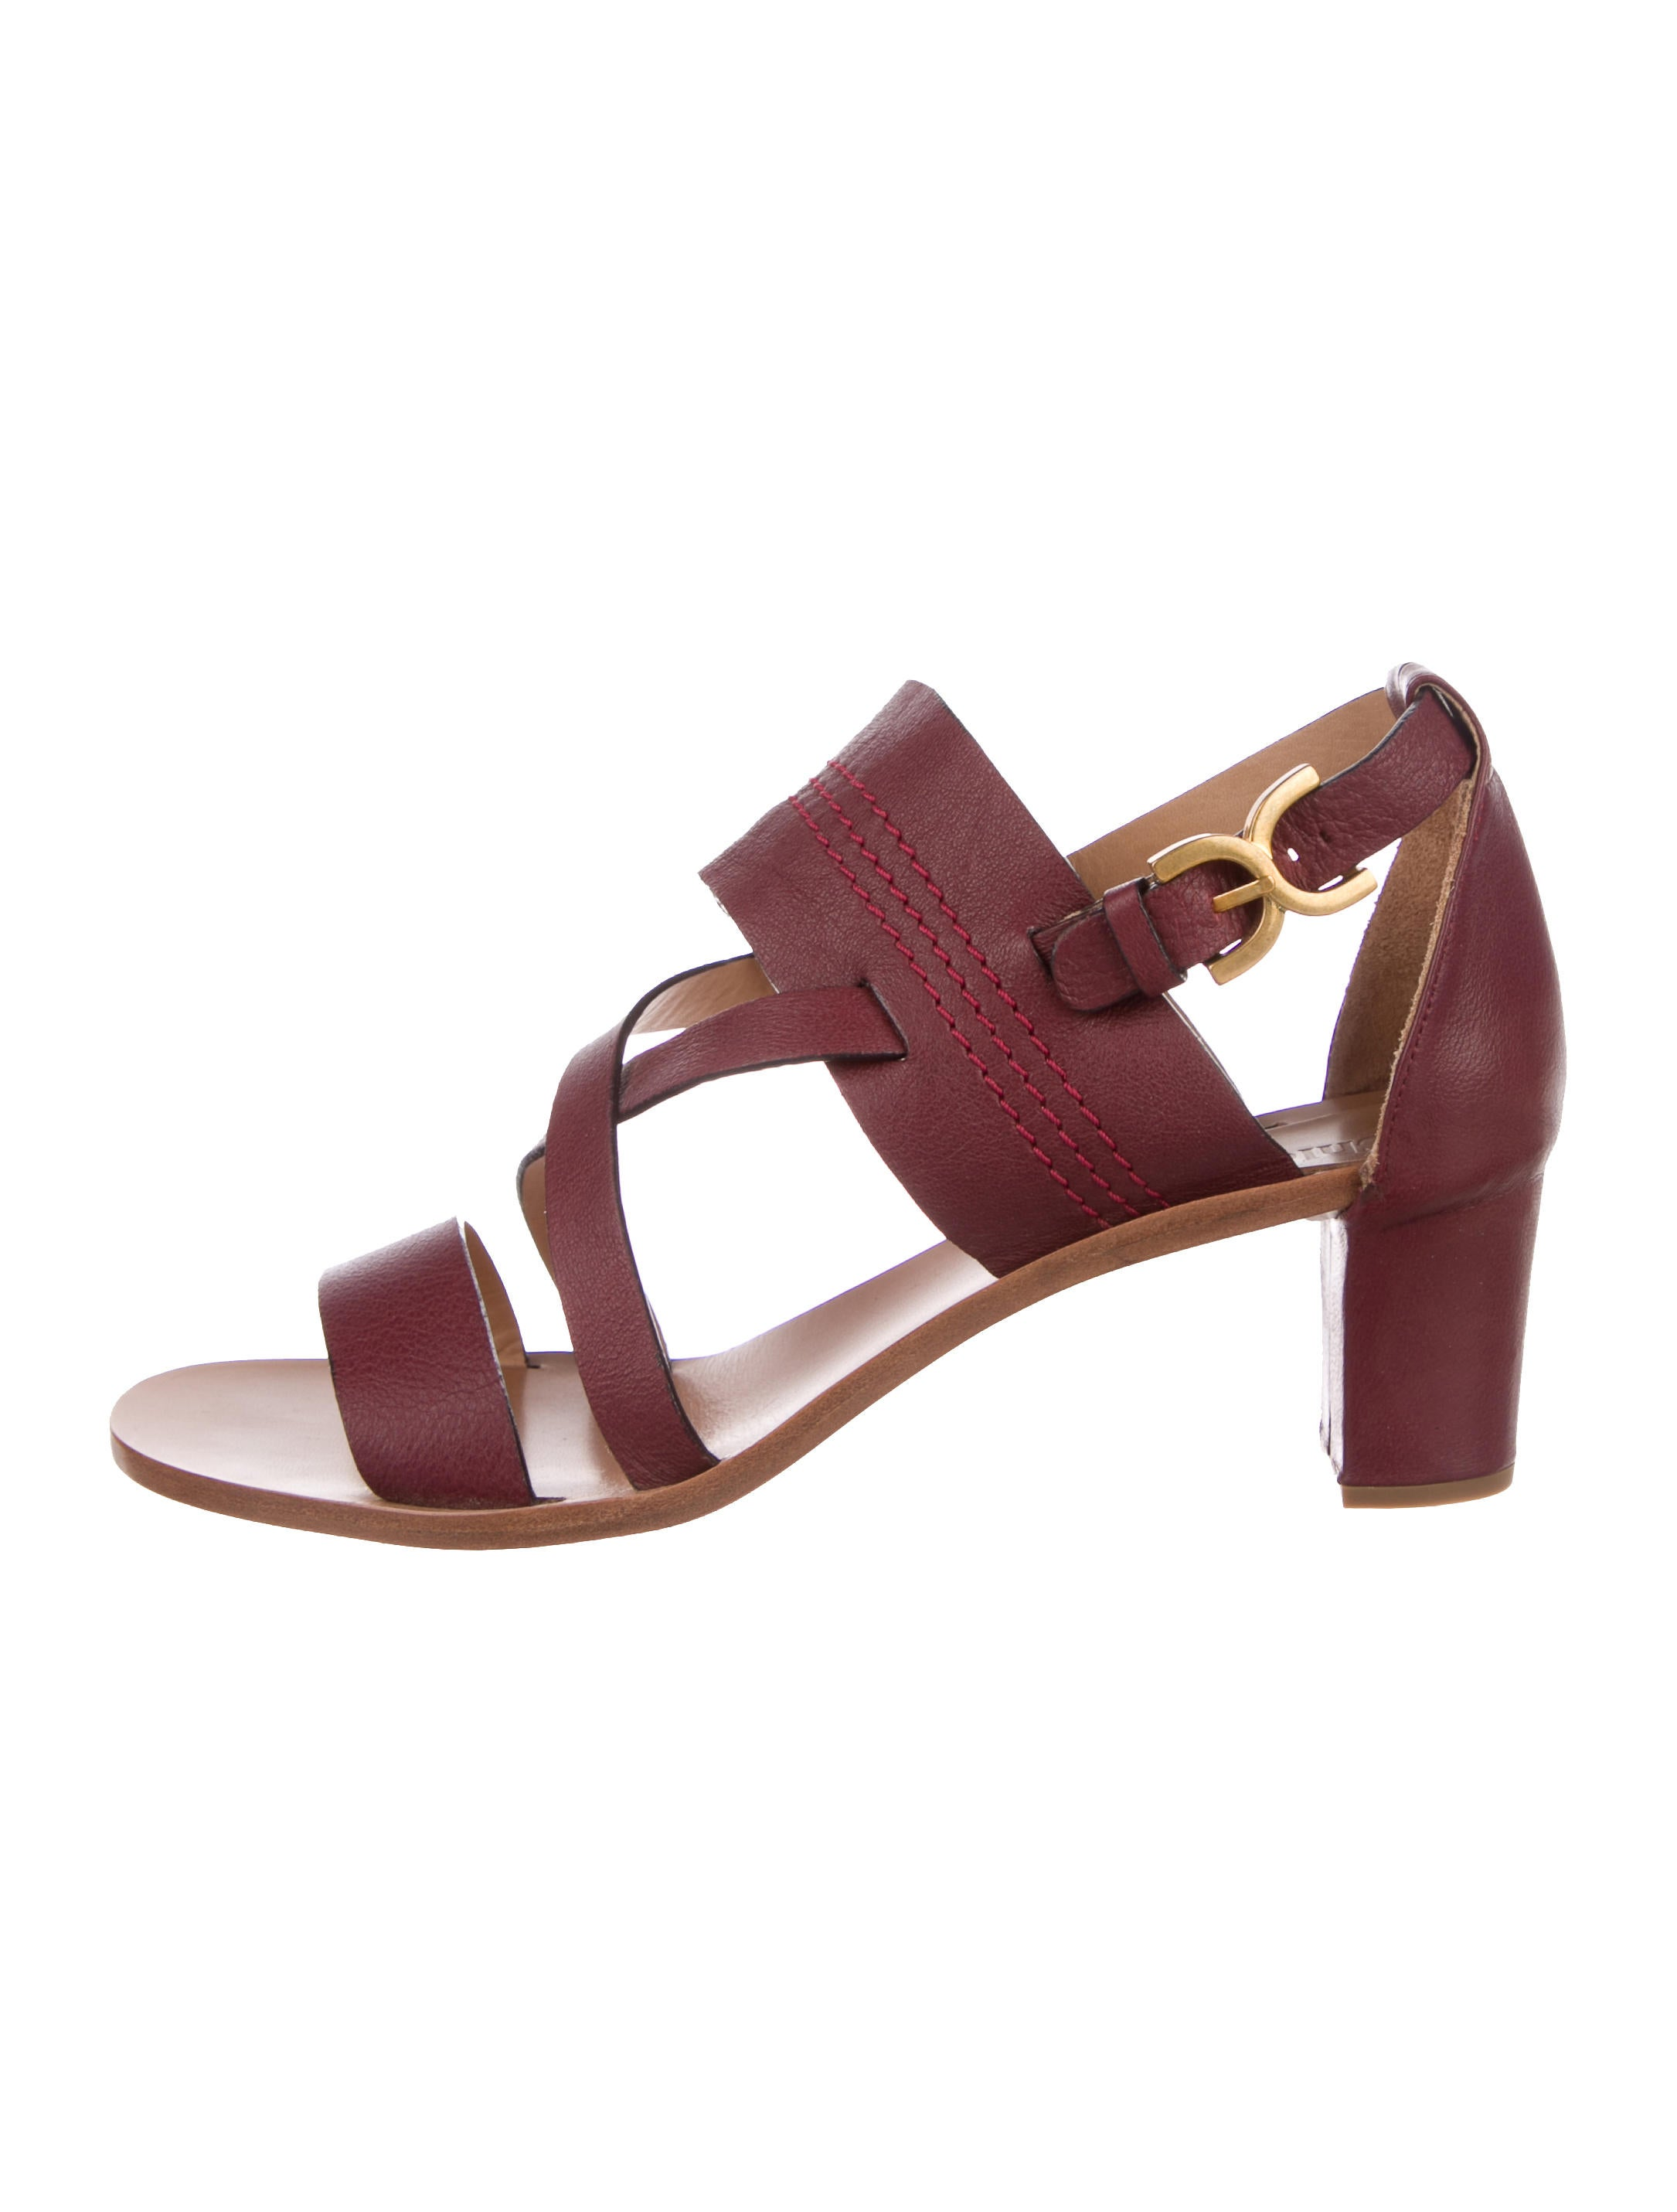 Chloé Multistrap Leather Sandals free shipping pictures sale the cheapest prices cheap price excellent online outlet store cheap online dzj8J4S